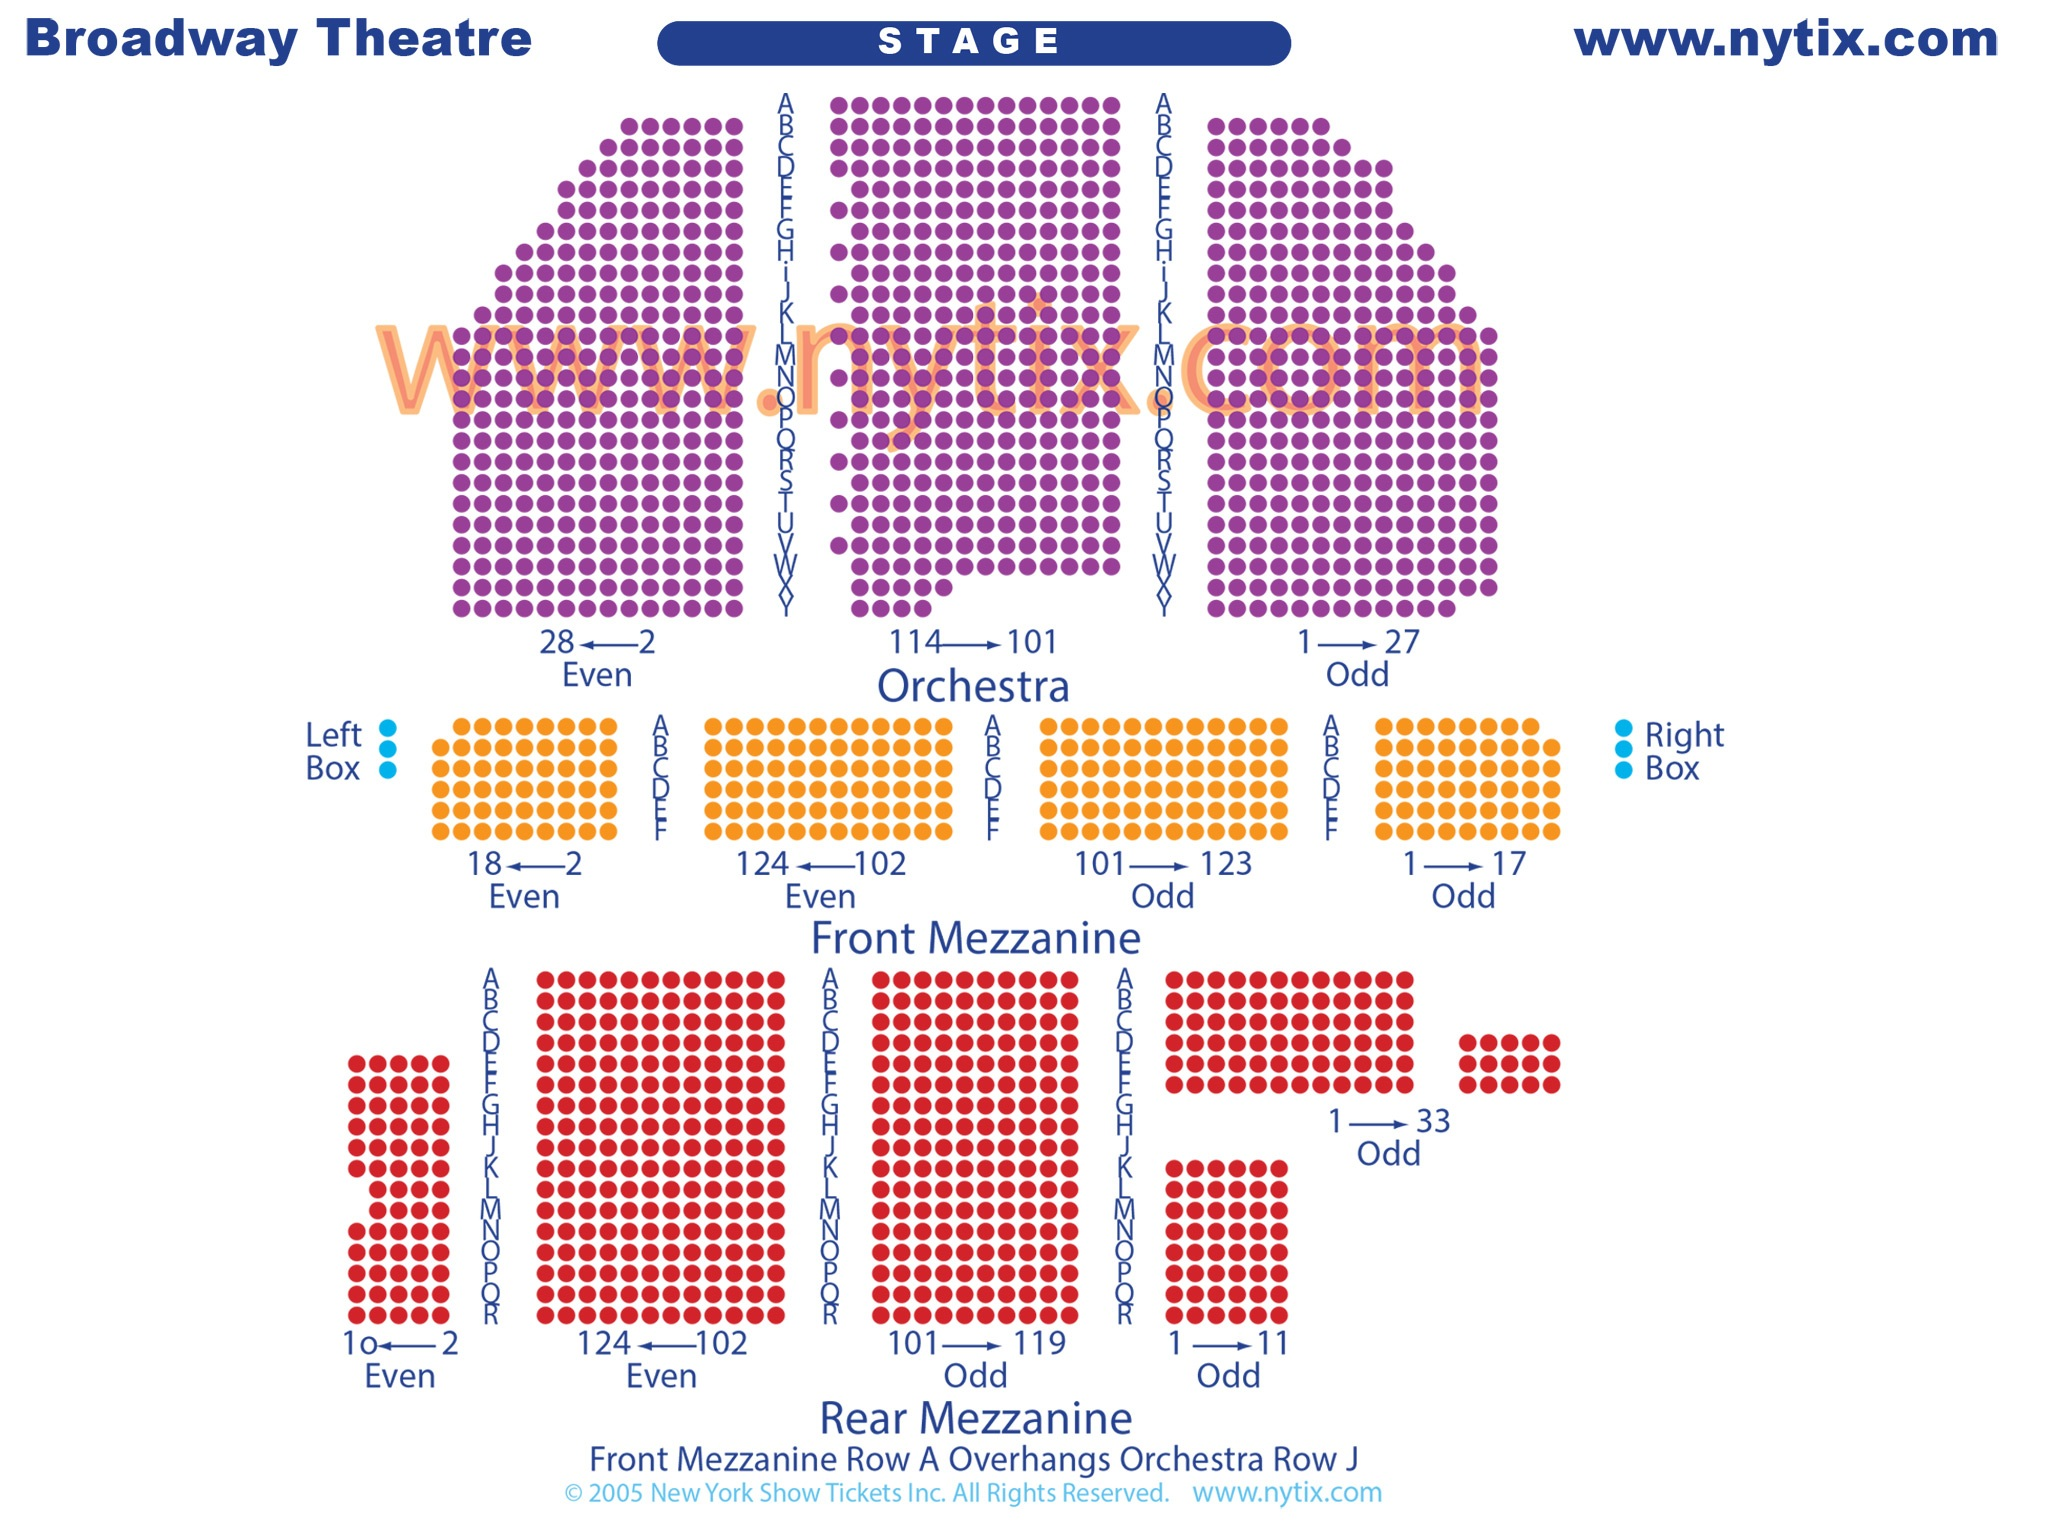 Broadway Theatre Seating Chart